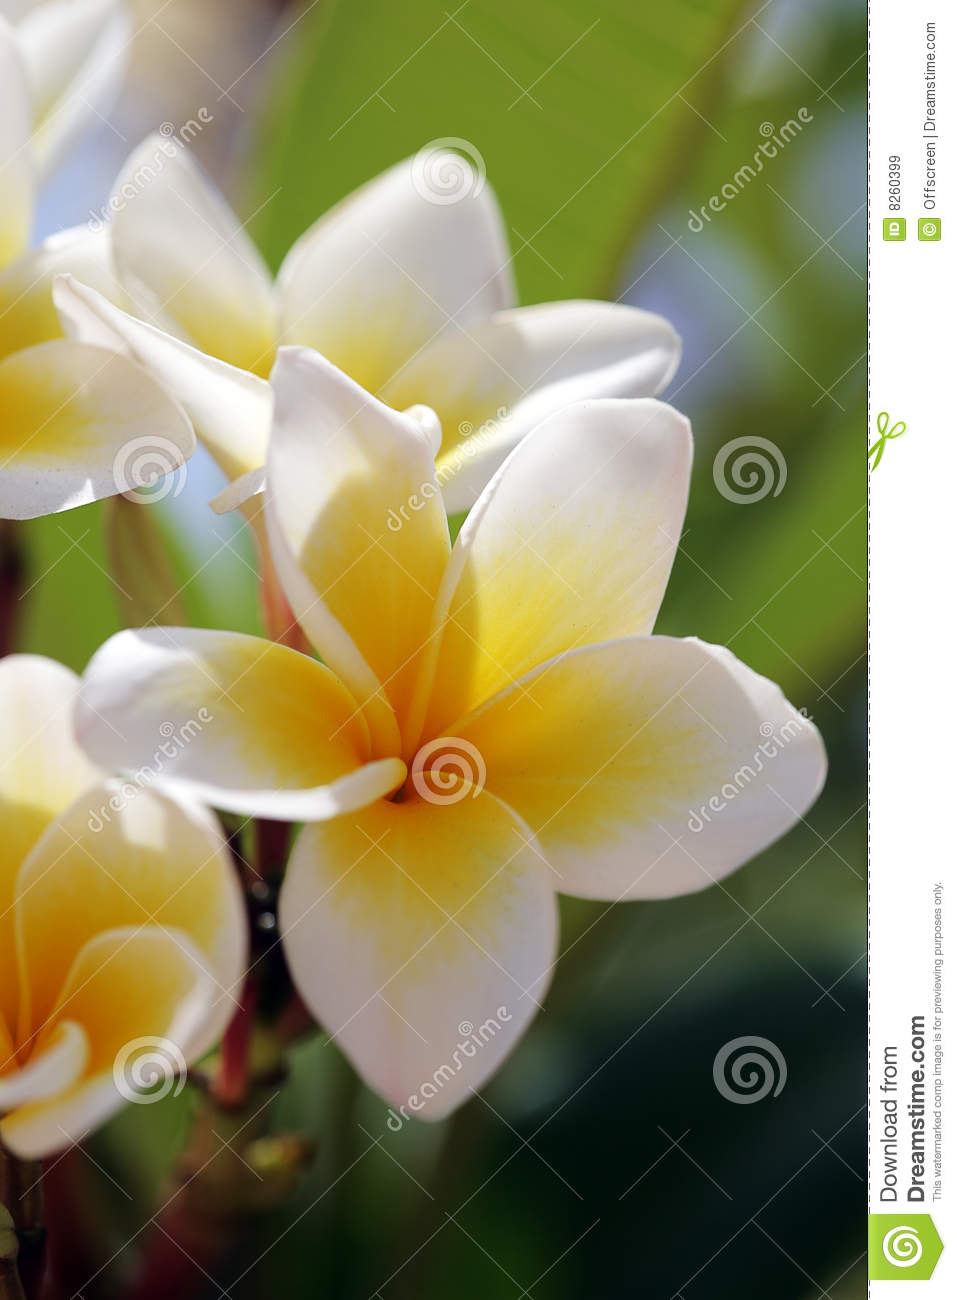 White Tropical Flowers Plumeria Stock Image Image Of Branch